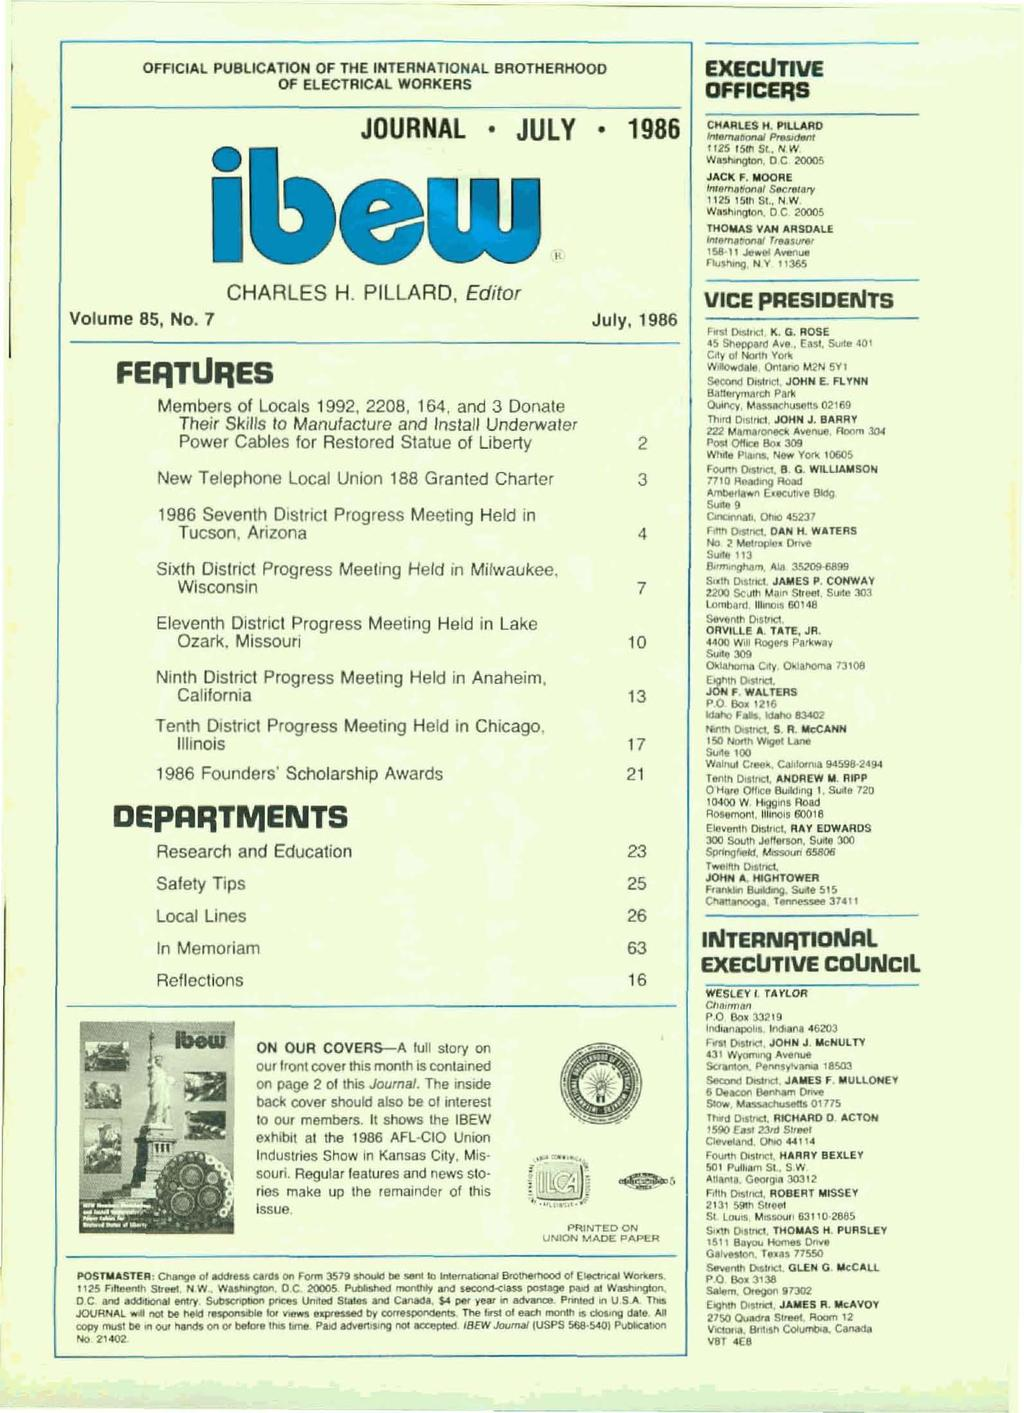 OFFICIAL PUBLICATION OF THE INTERNATIONAL BROTHERHOOD OF ELECTRICAL WORKERS I JOURNAL JULY 1986 CHARLES H. PILLARD, Editor Volume 85, No. 7 July, 1986 FEFlTLlFIES Members of Locals 1992, 2208.